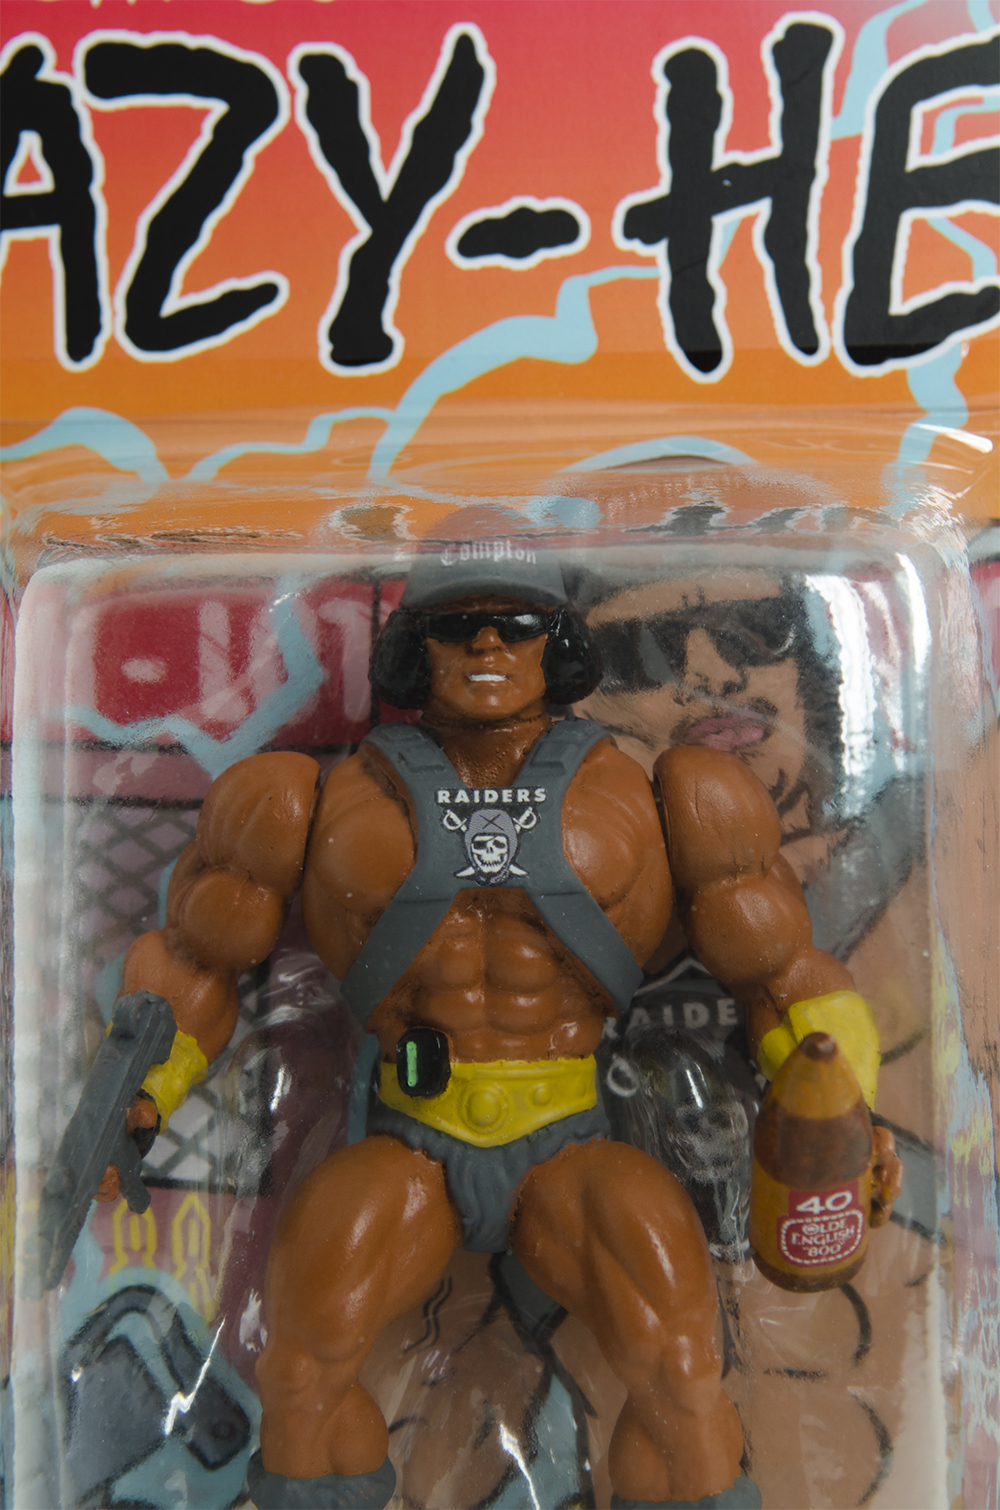 Eazy He Eazy He By Trap Toys From Trap Toys Trampt Library